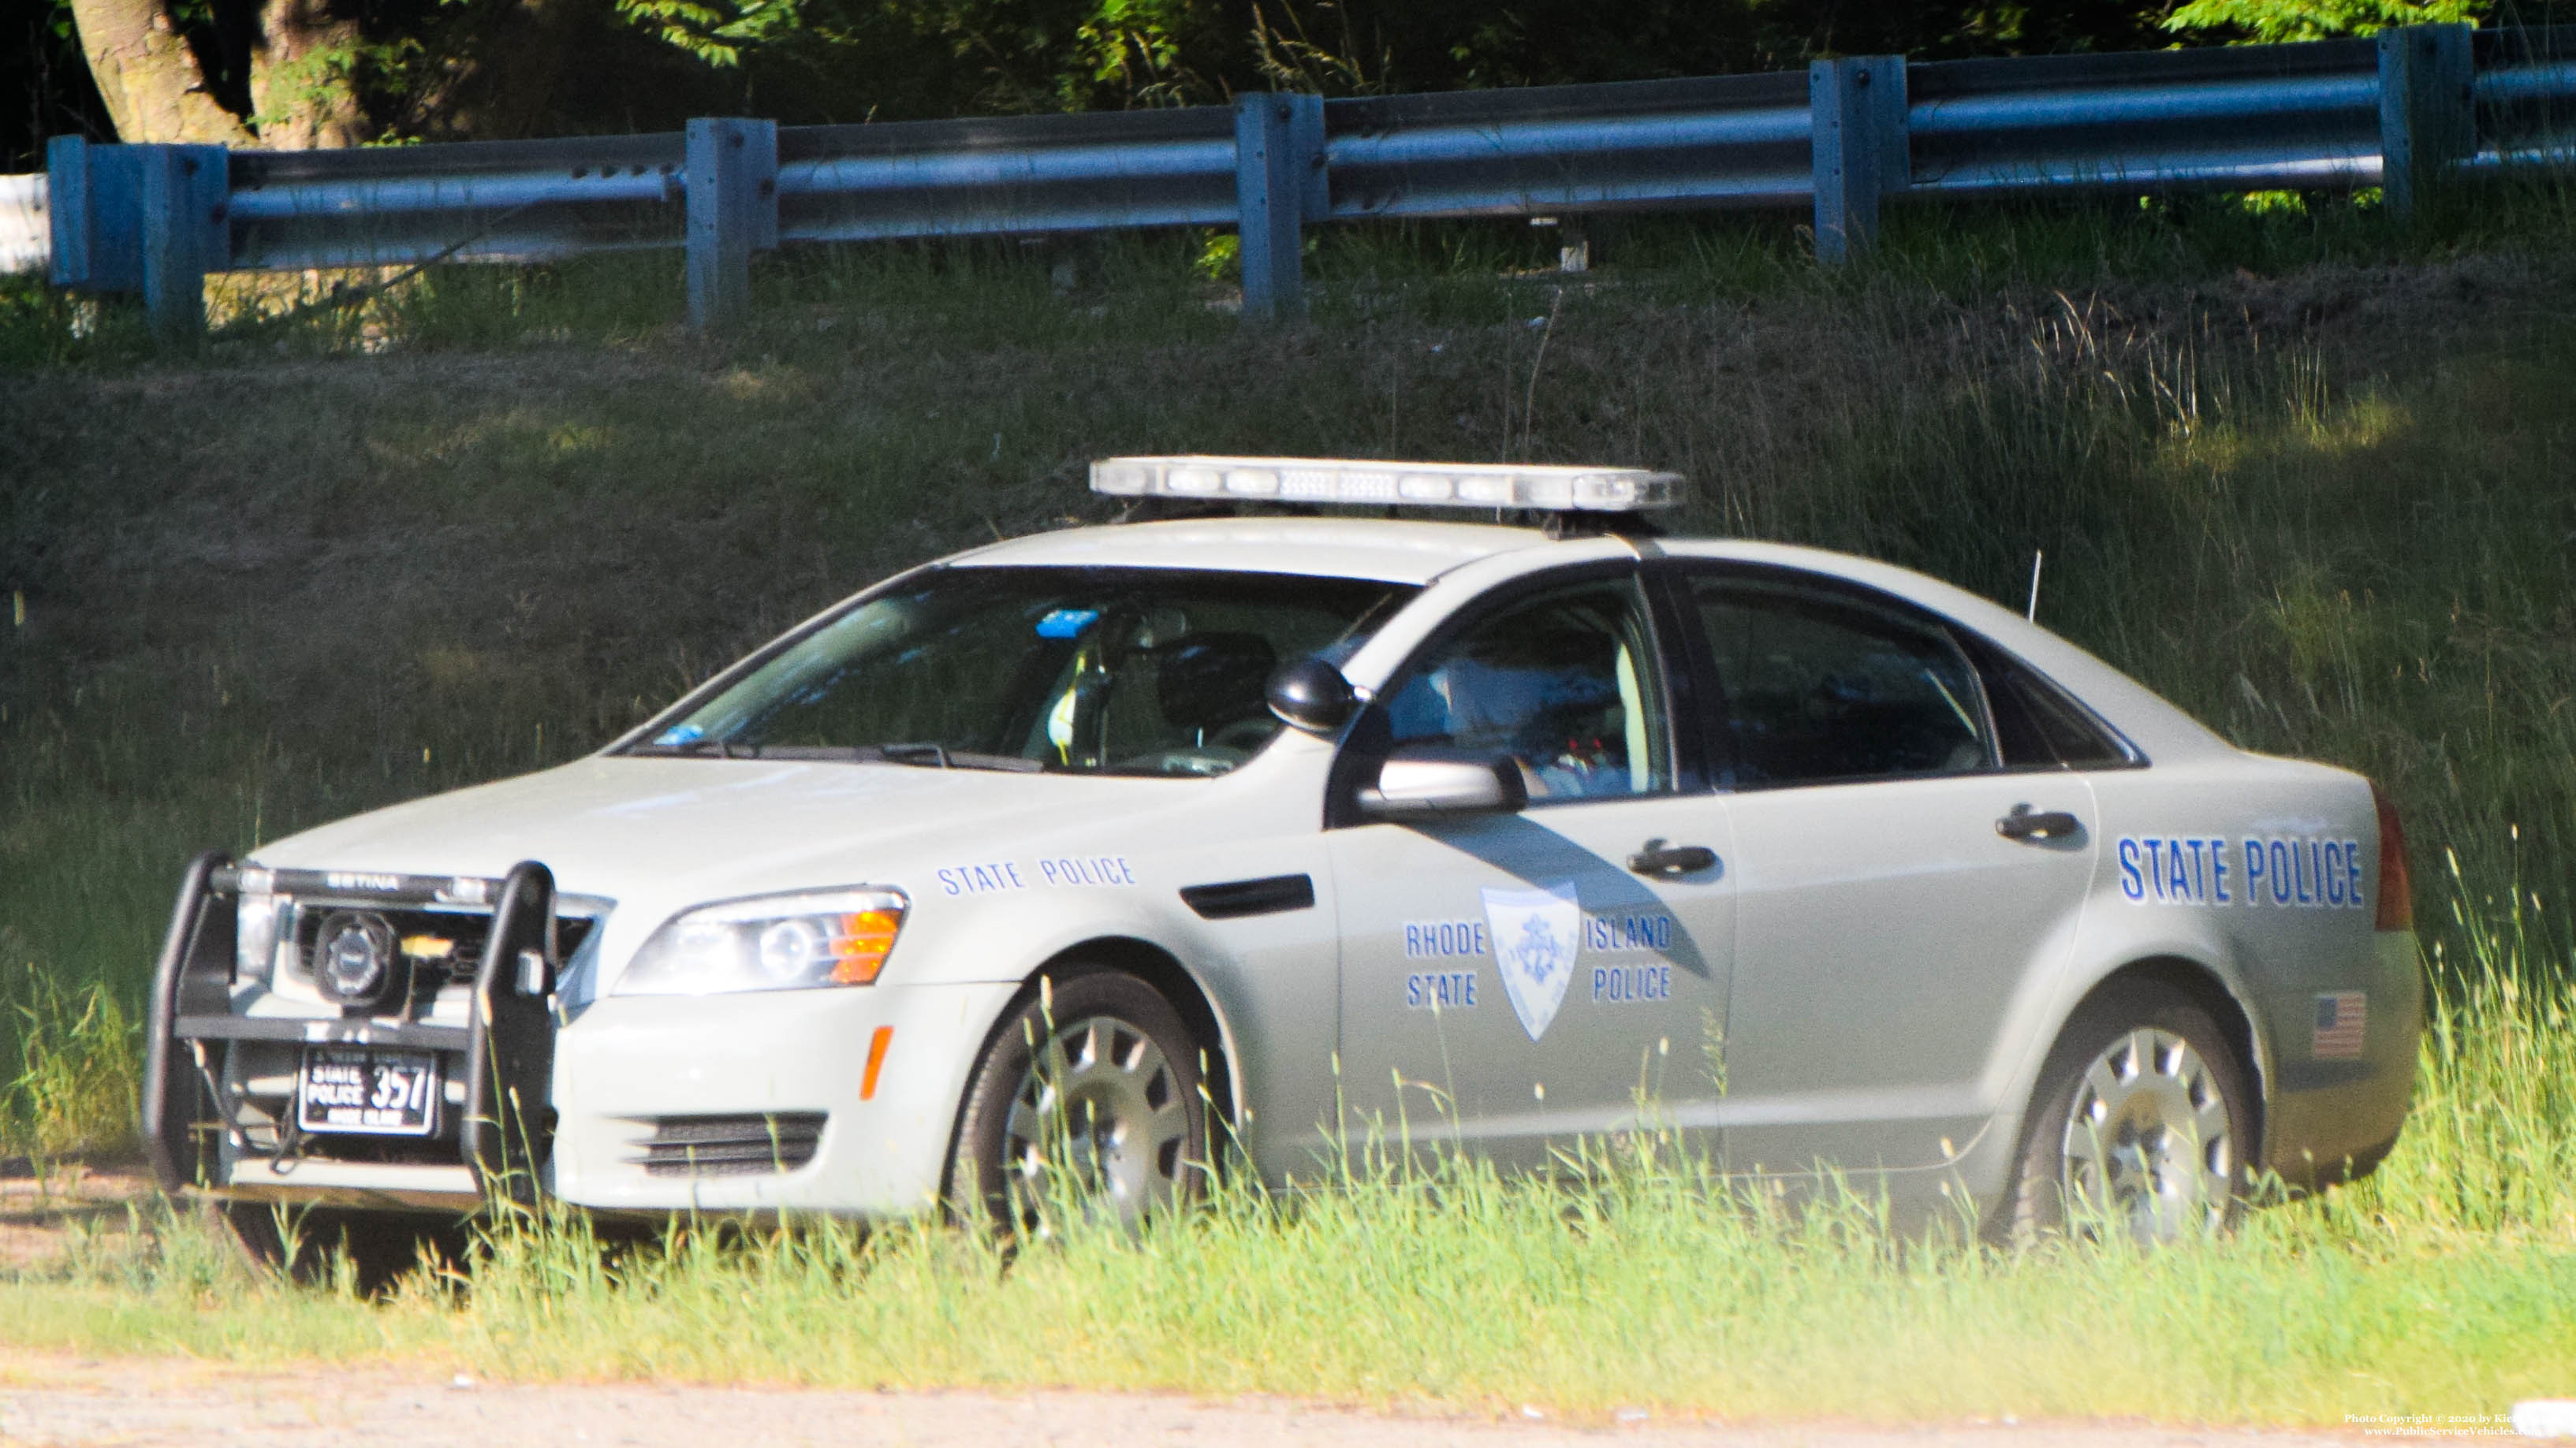 A photo  of Rhode Island State Police             Cruiser 357, a 2013 Chevrolet Caprice             taken by Kieran Egan